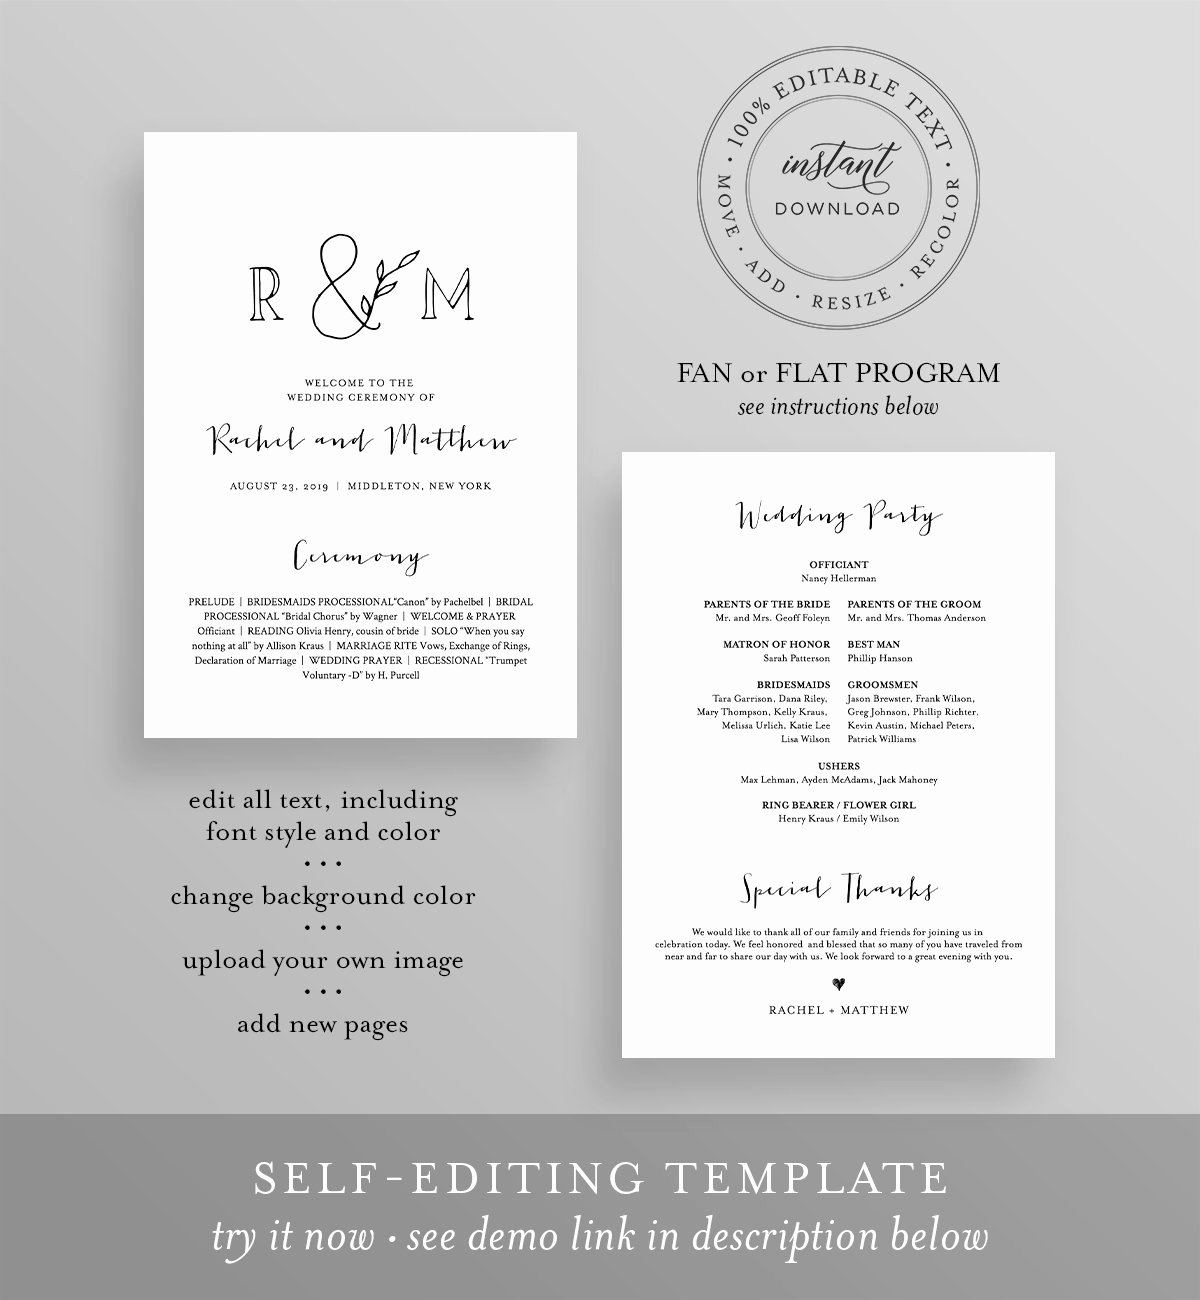 Monogram order form Template Luxury Wedding Program Template Flat or Fan Program Rustic Monogram Instant Download Printable